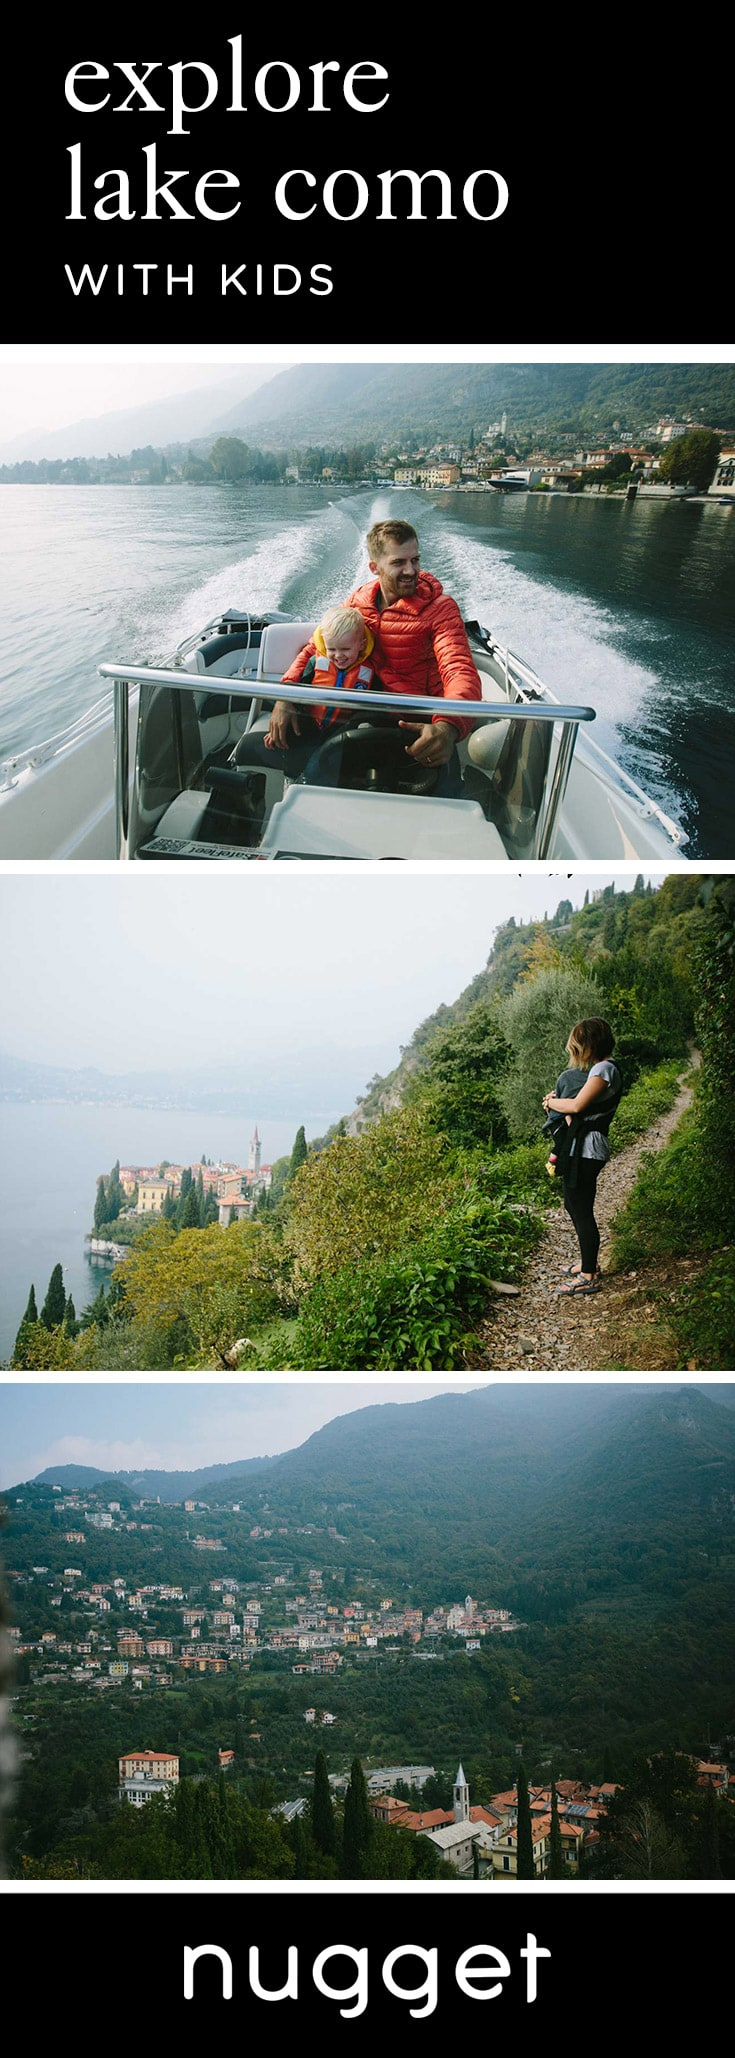 A Day at Lake Como: A Castle, Boat Ride and Pizza